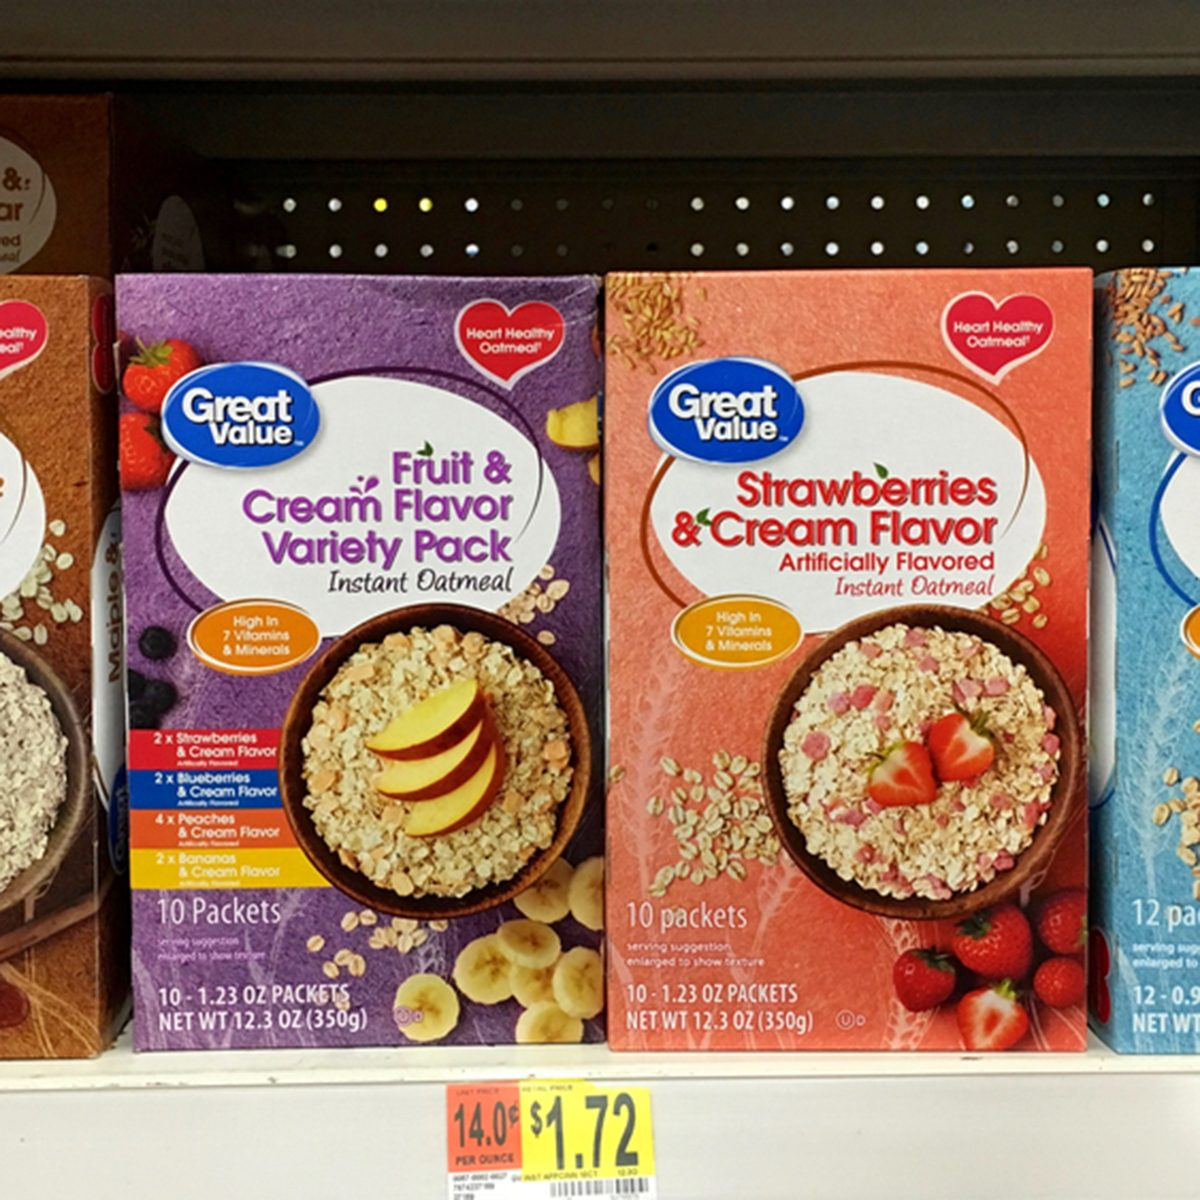 Grocery store shelf with boxes of Great Value generic flavored instant Oatmeal packages.